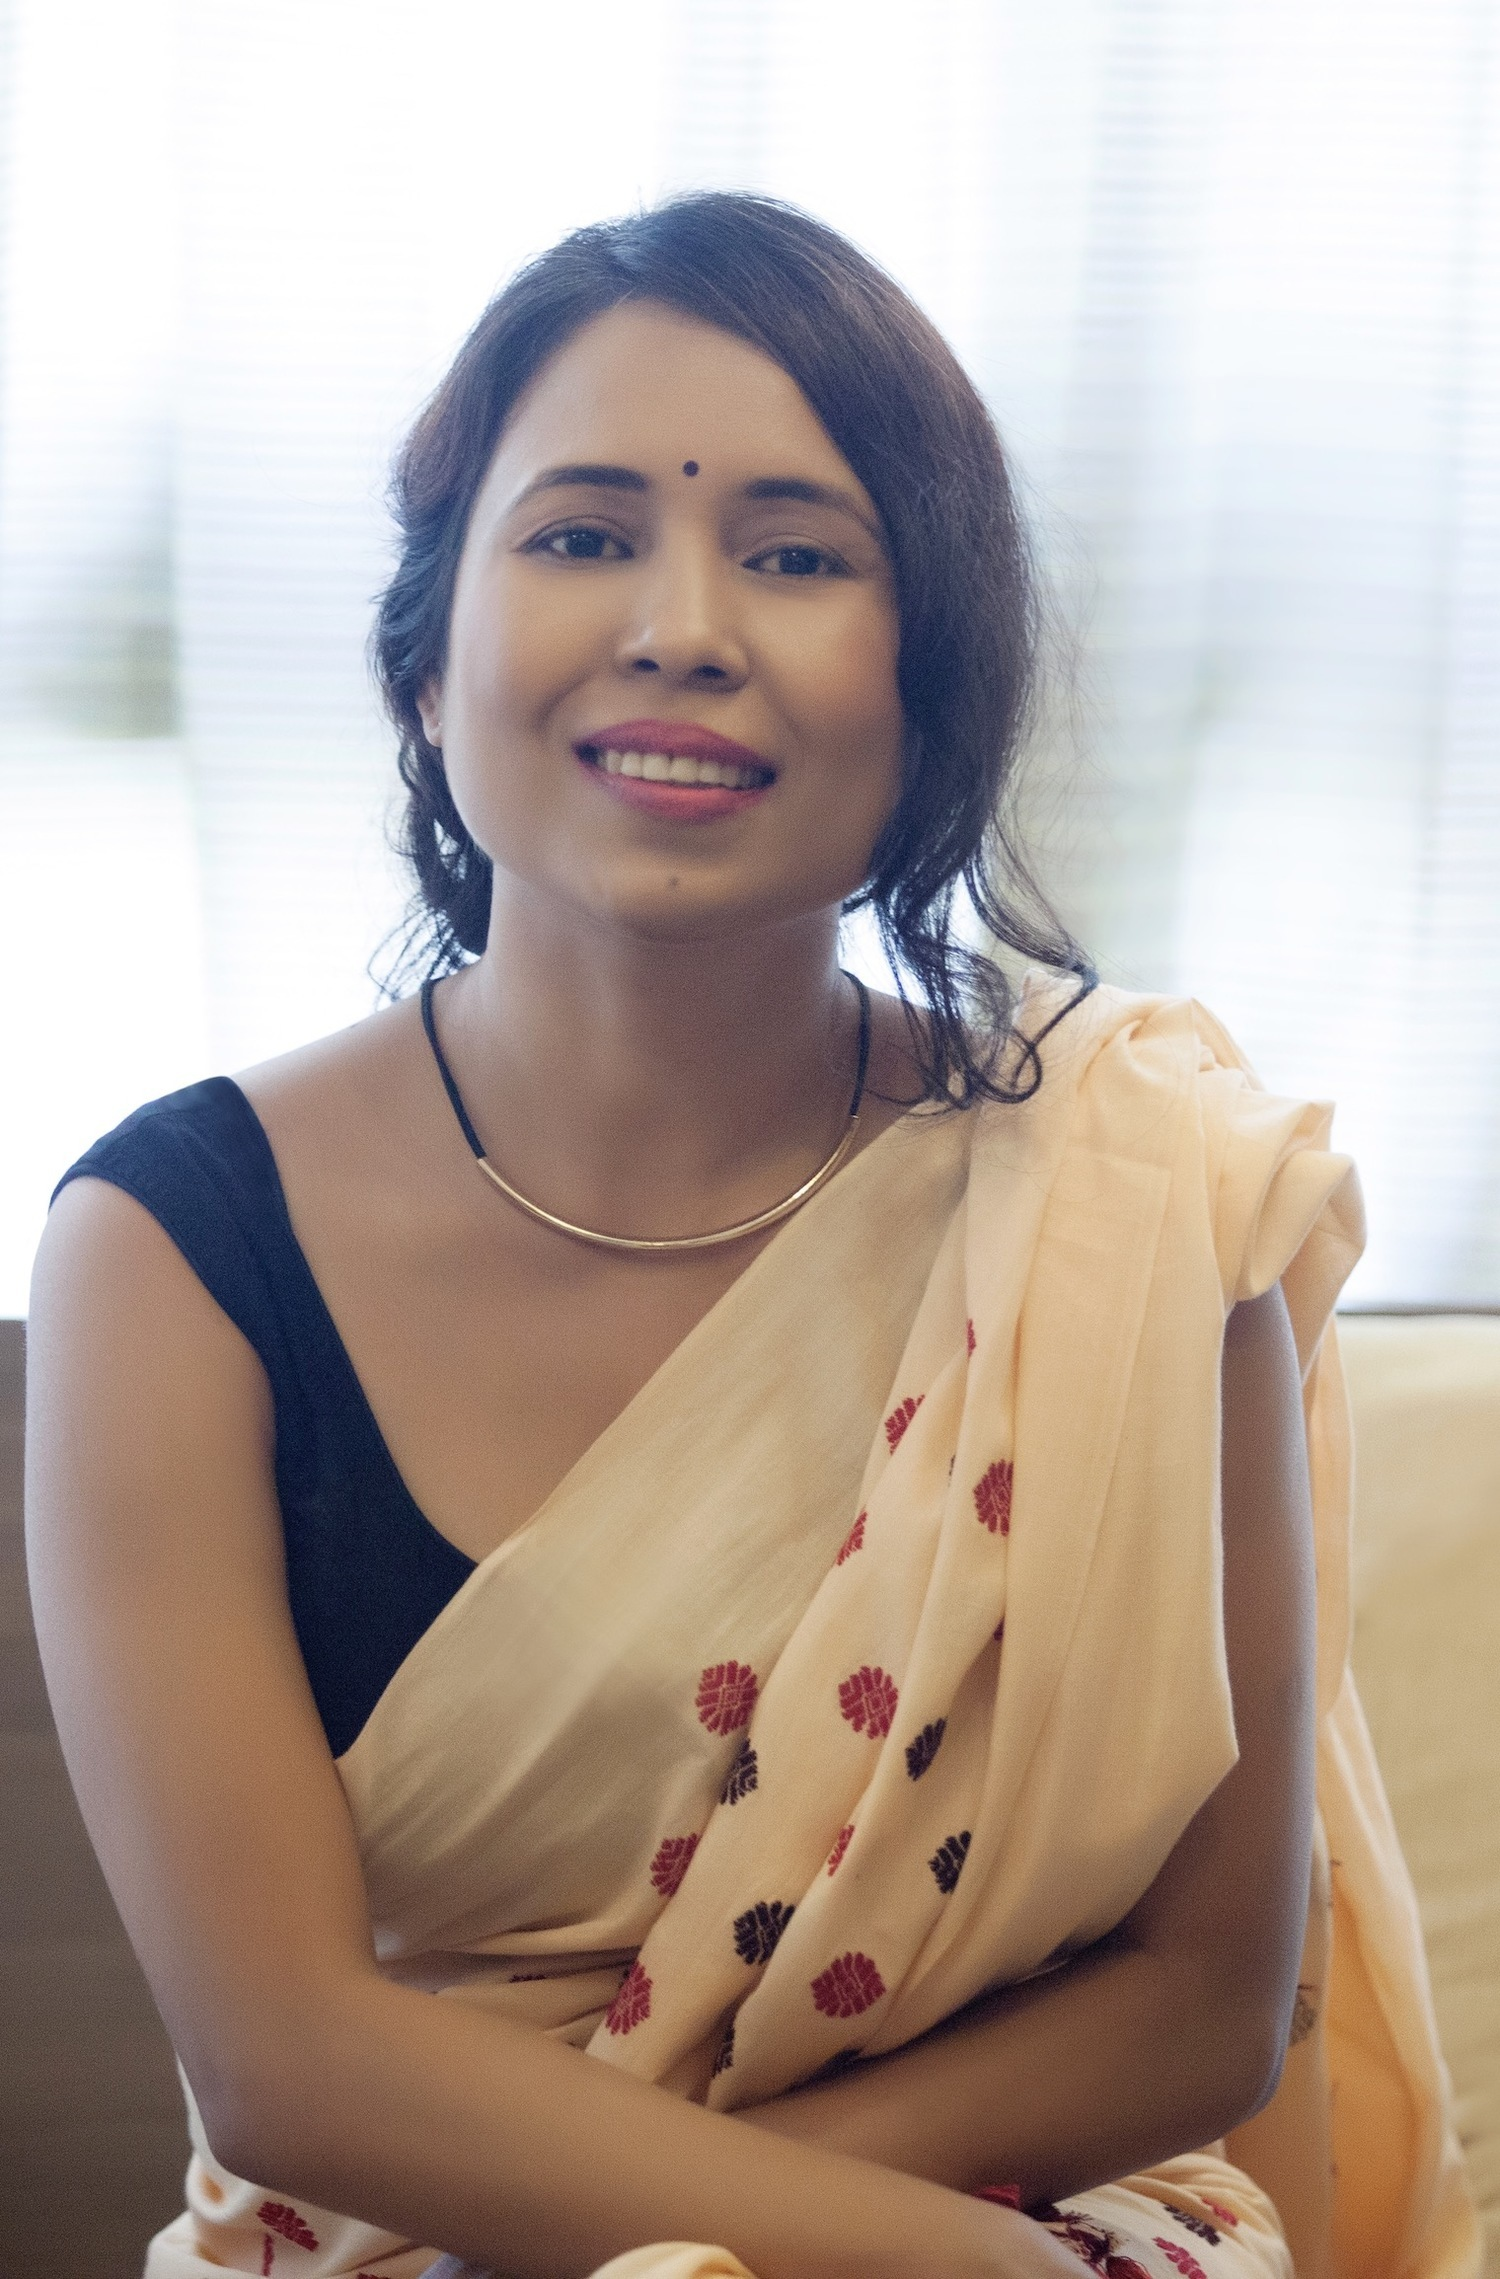 BWW Interview: National Award Winner Rima Das On Being A Part Of Asian Pop Up Cinema In Chicago